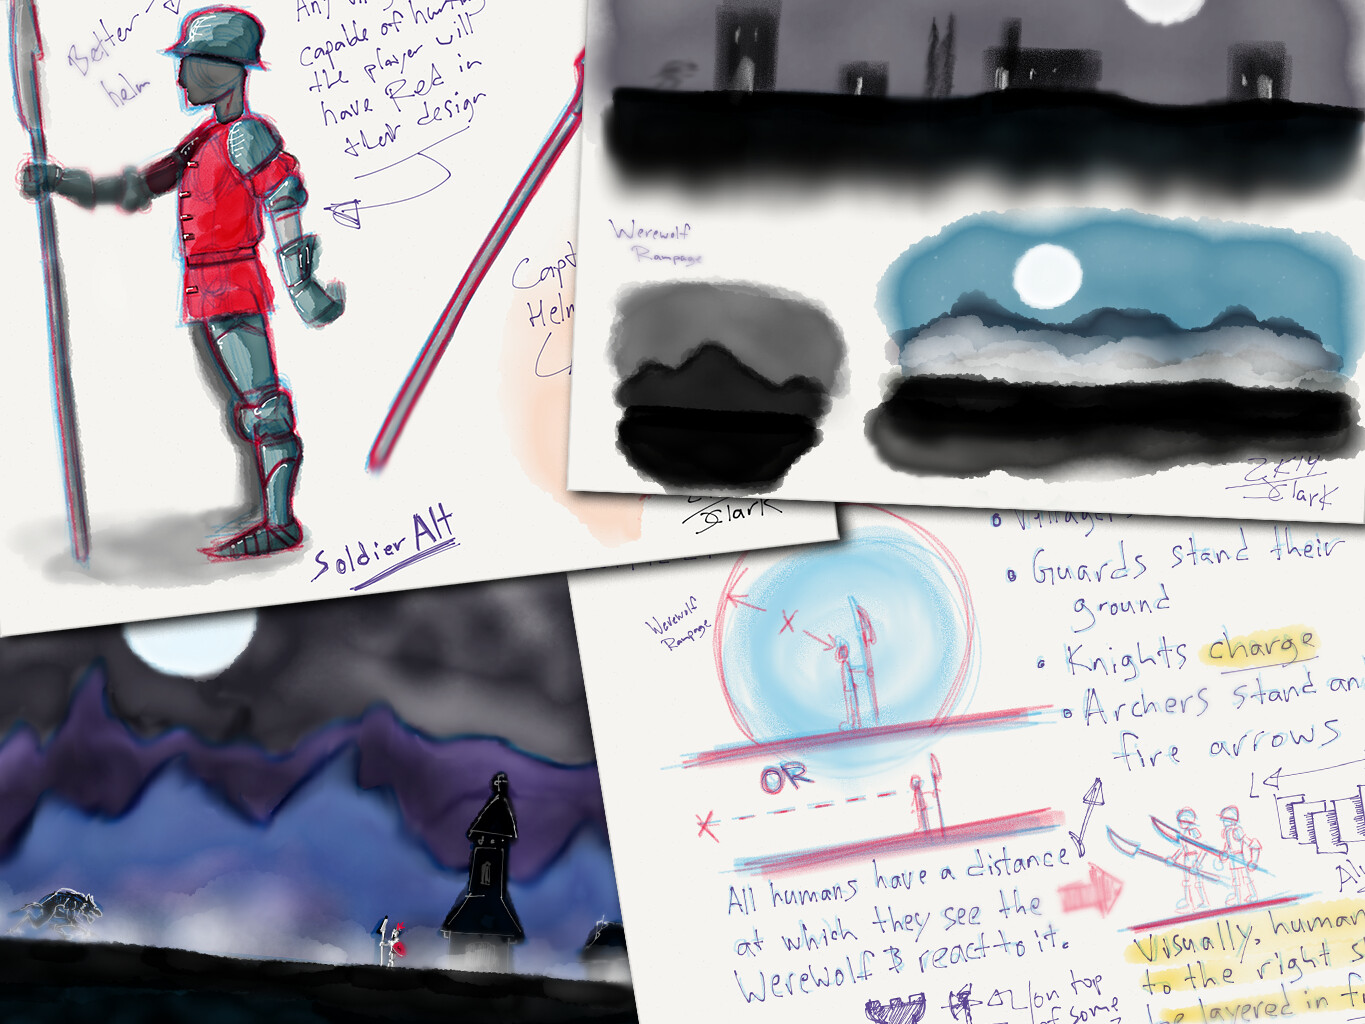 A sampling of the notes and sketches I made for this project.